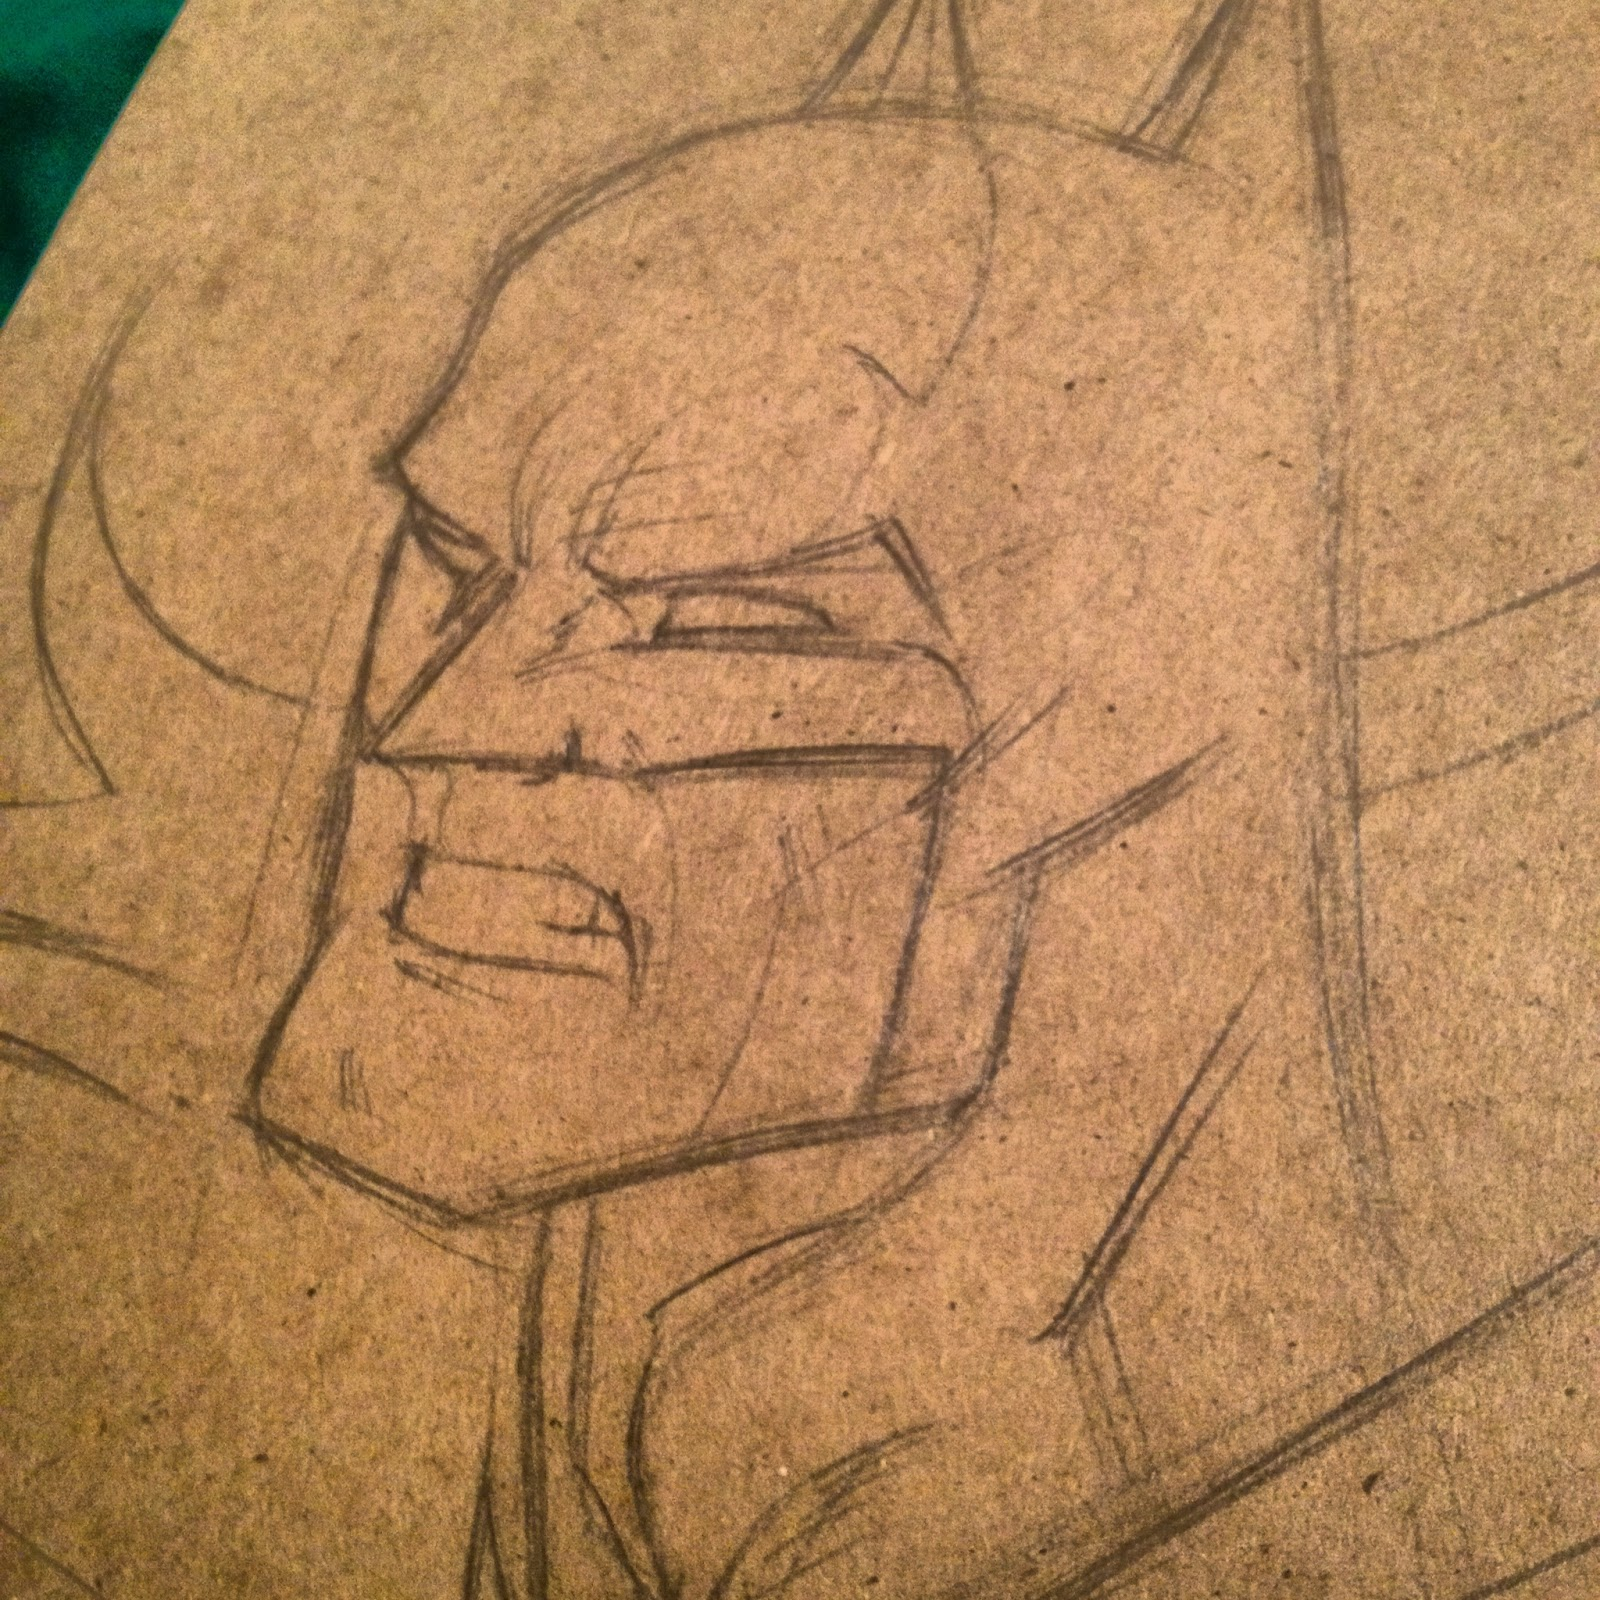 Drawn paper batman Batman sketch The Step is